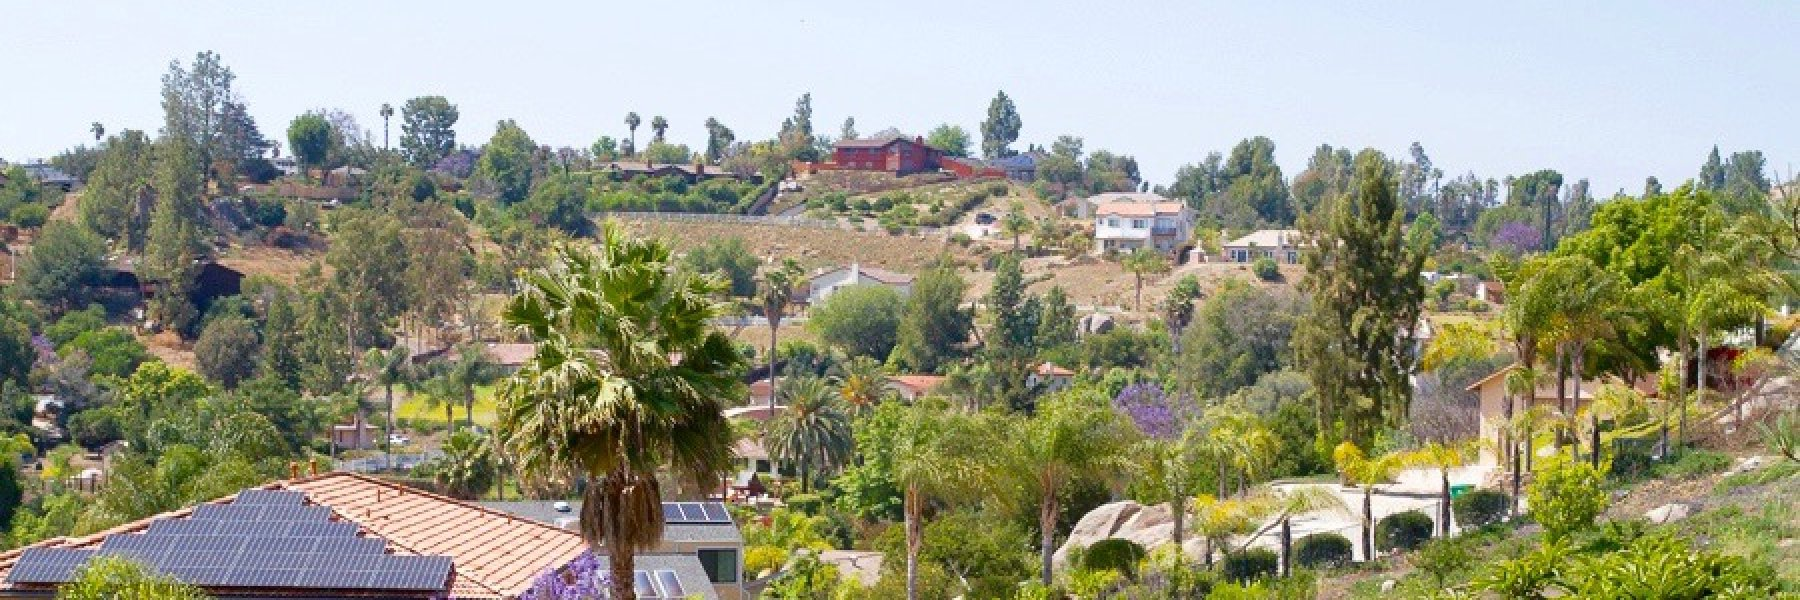 Vista Grande Community of Homes in El Cajon